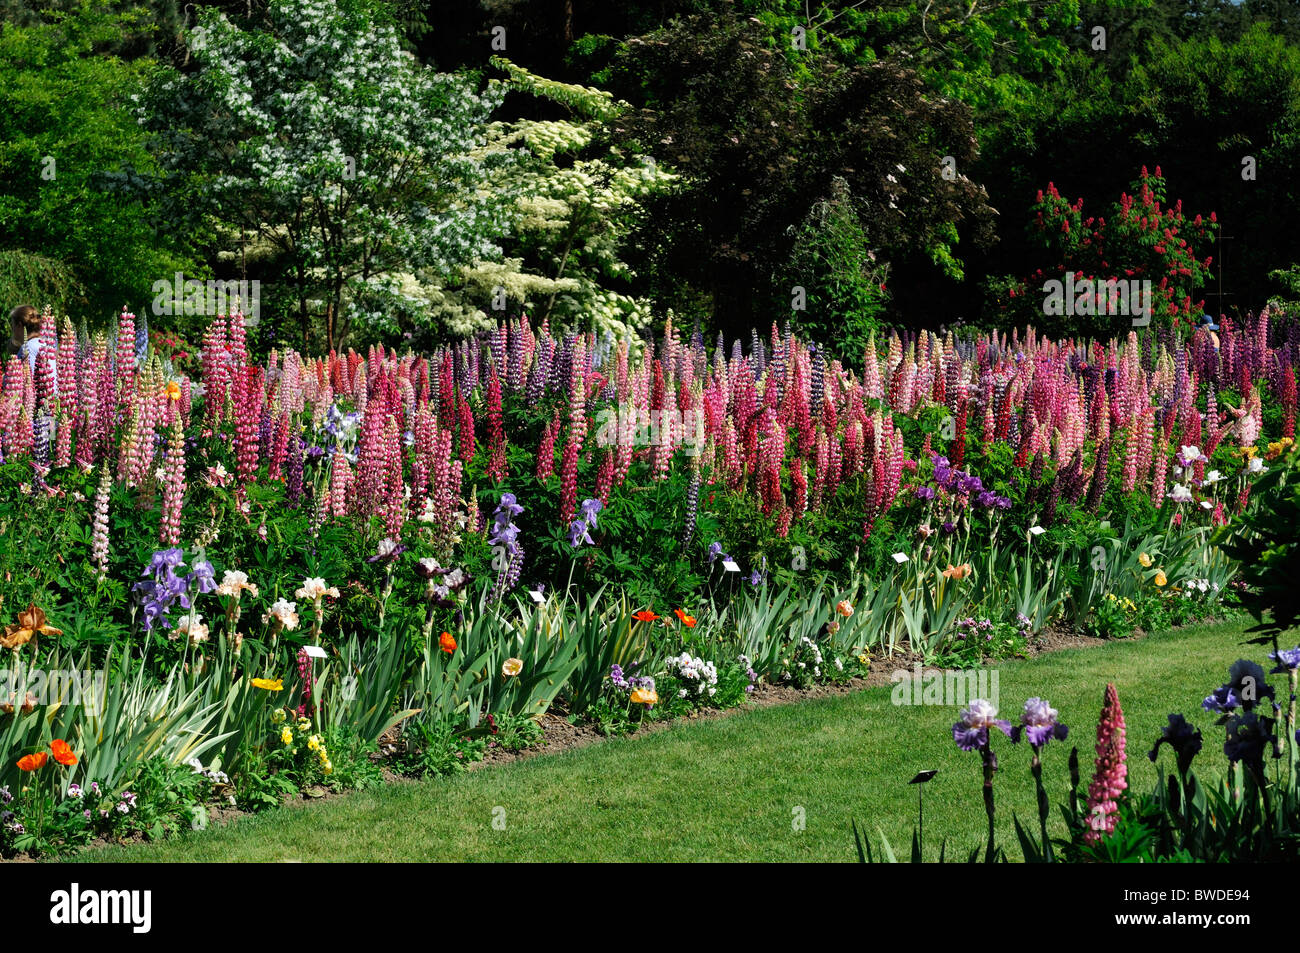 Perennial flowers for borders gallery flower decoration ideas perennial flowers for borders gallery flower decoration ideas perennial flower border ideas choice image flower decoration mightylinksfo